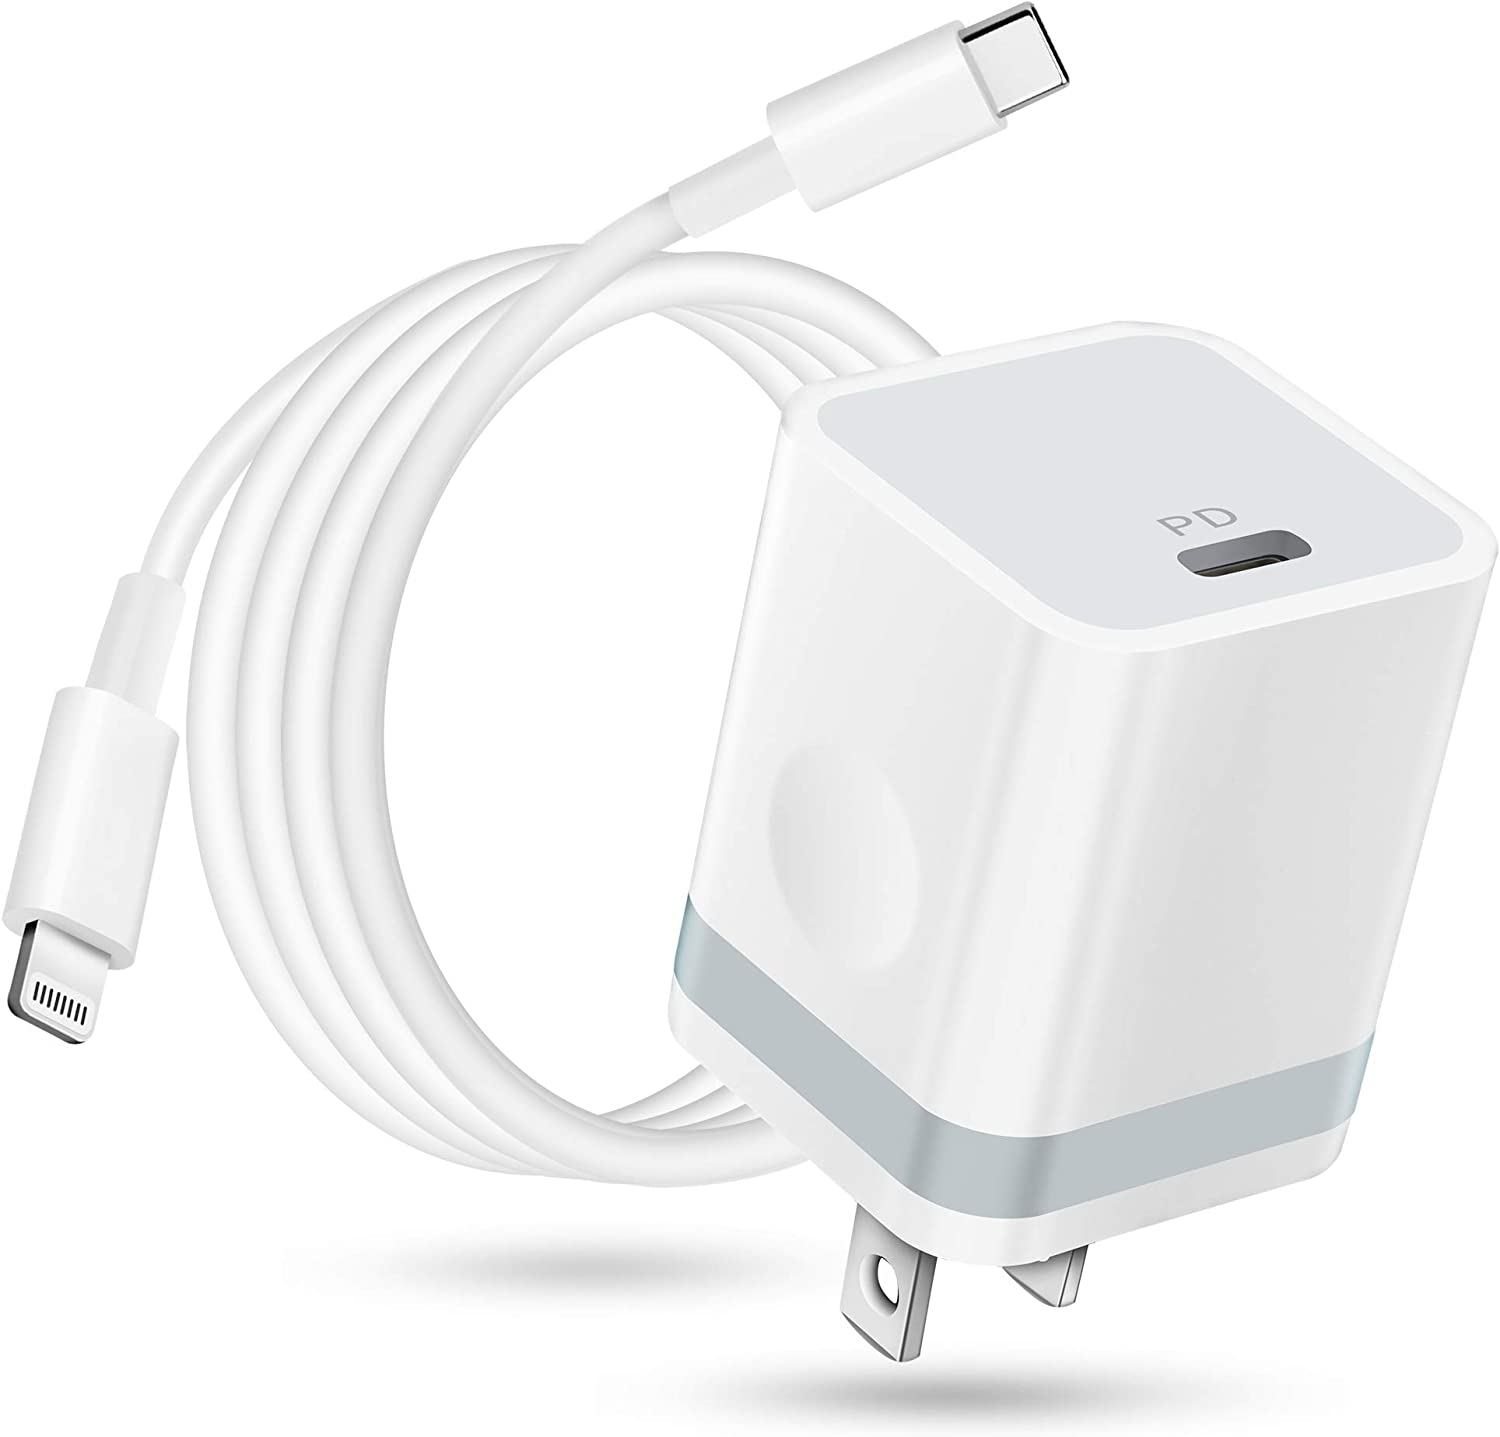 LUOSIKE iPhone 12 Charger MFi Certified, USB C Charger 20W PD Adapter Wall Plug with 6FT USB-C to Lightning Cable Fast Charging for iPhone 12/12 Mini/12 Pro Max/11/XS/XR/X/8/Plus